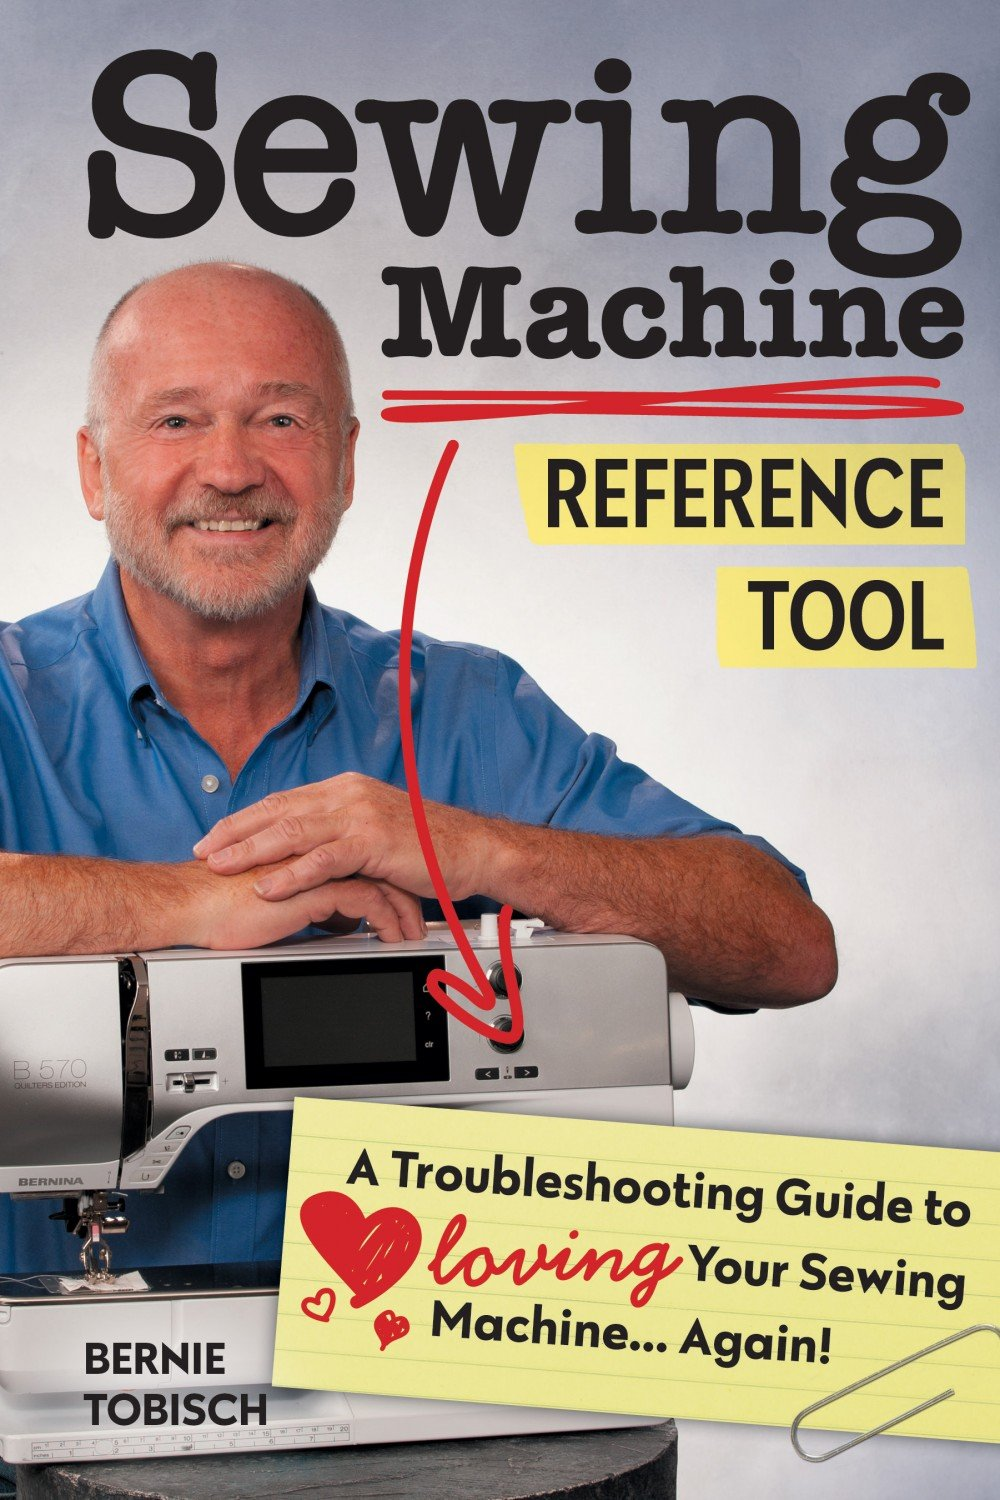 Sewing machine reference guide